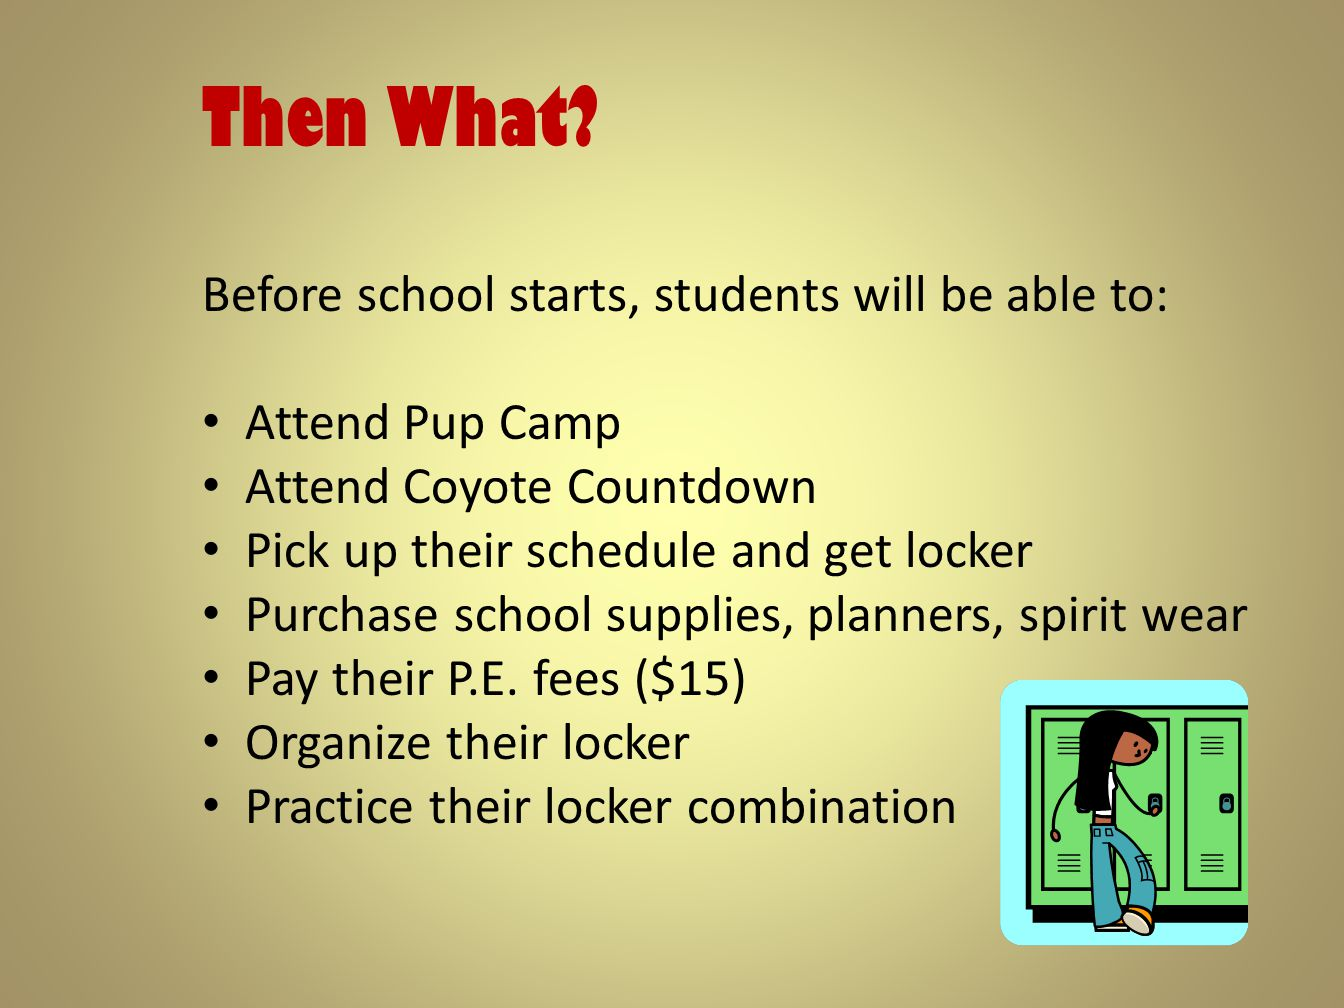 Then What Before school starts, students will be able to: